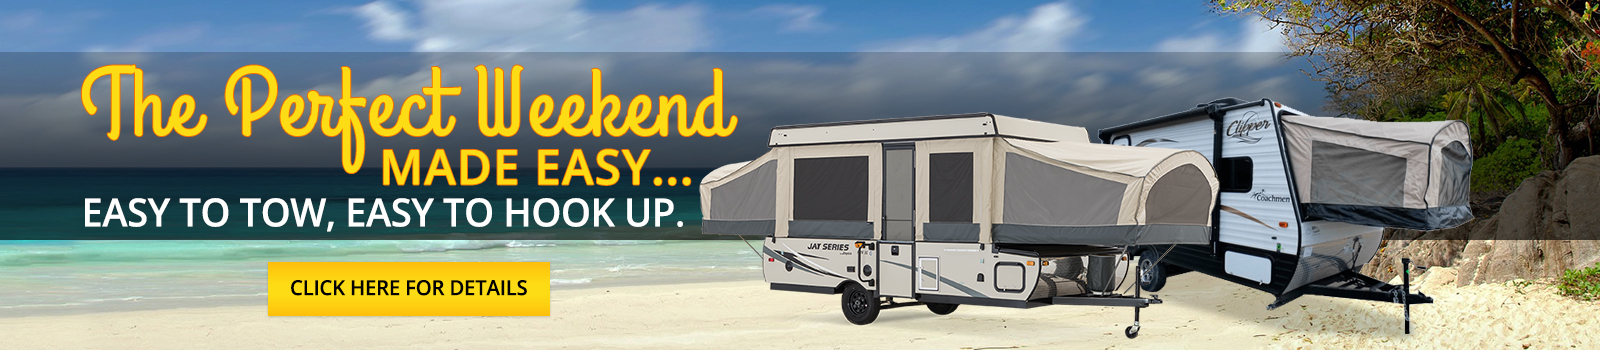 Crestview Rv Georgetown Texas >> Crestview RV | Austin Texas RV Dealer Jayco Winnebago Dutchmen Coachmen Fleetwood Itasca RVs